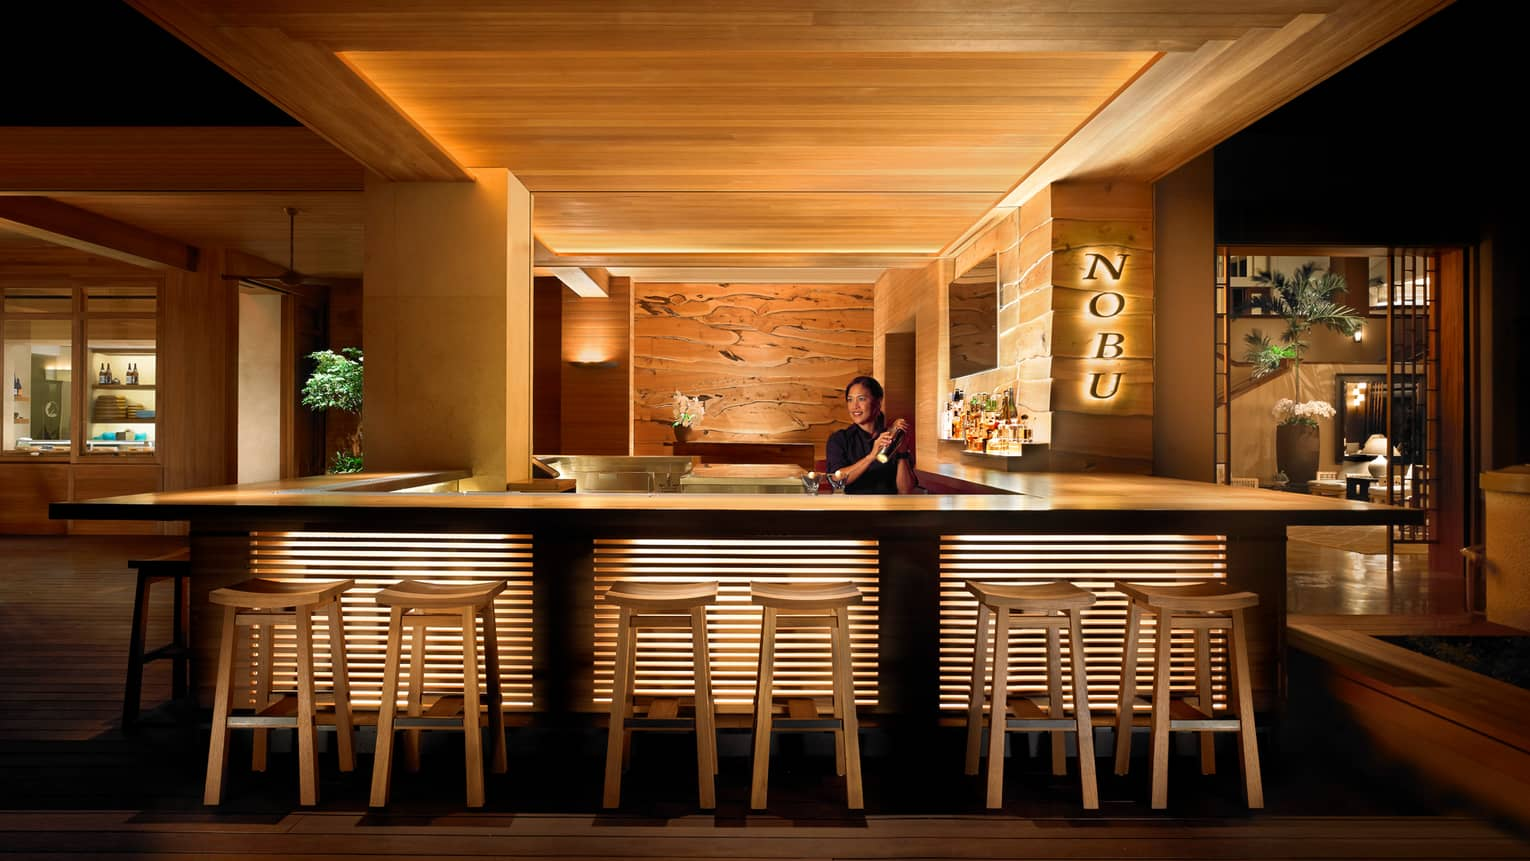 Bartender shaking cocktail behind stool-lined bar at NOBU restaurant